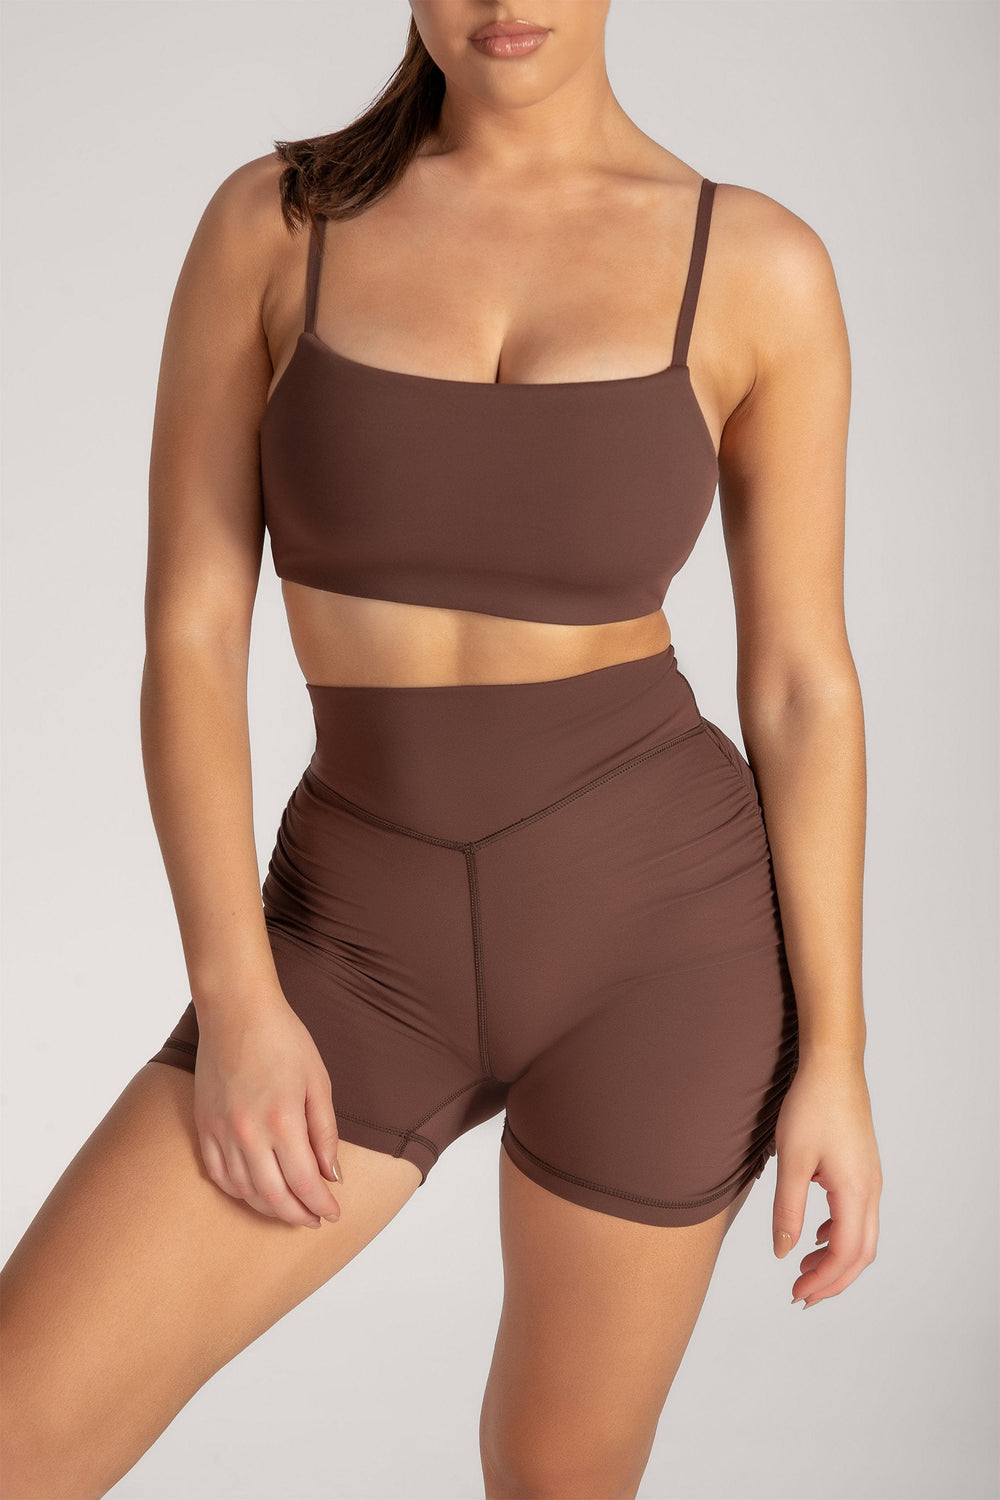 Asteria Thin Strap Crop Top - Chocolate - MESHKI ?id=16078475657291